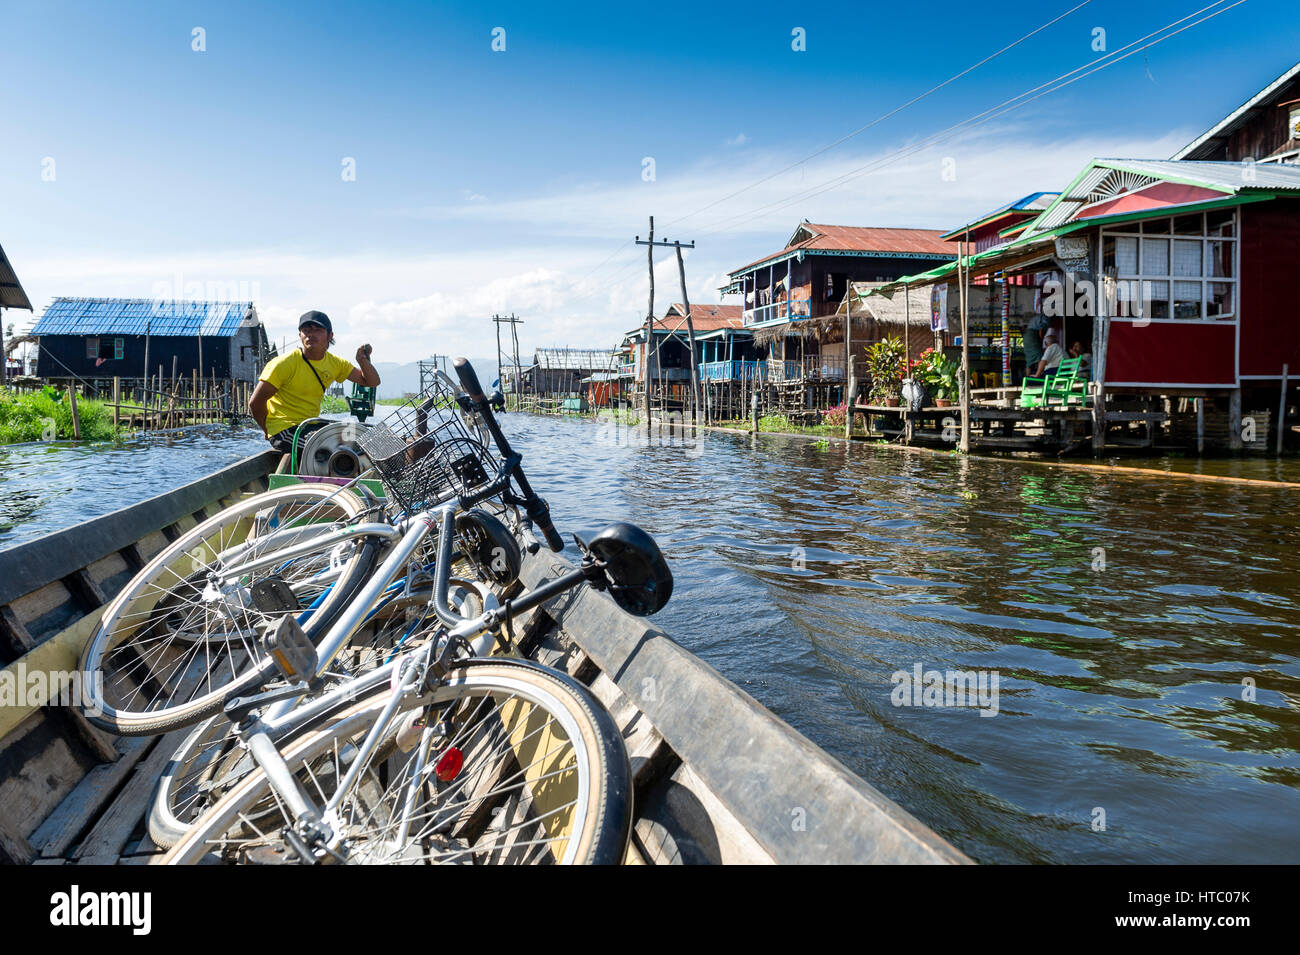 Myanmar (ex Birmanie). Inle lake. Shan state. The Intha, an ethnic group of Inle Lake, live in about 40 lake villages - Stock Image